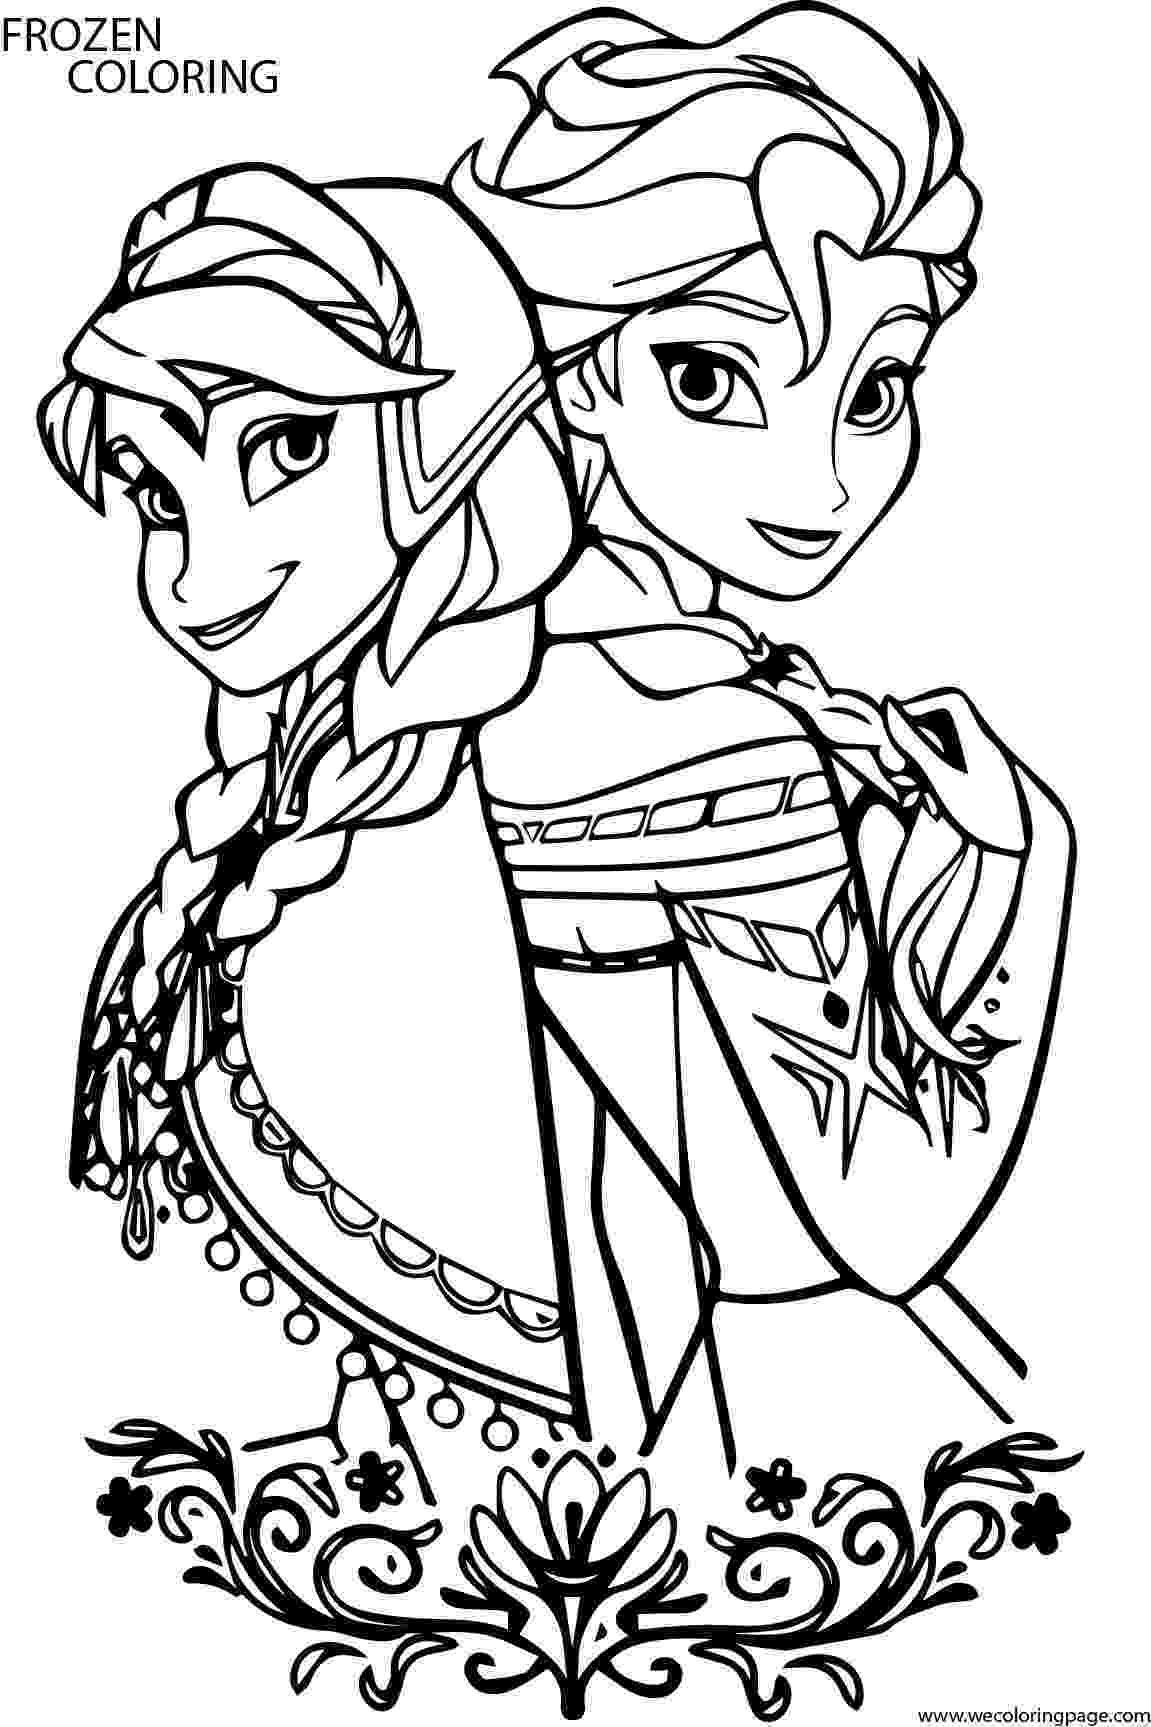 coloring frozen free printable frozen coloring pages for kids best coloring frozen 1 3